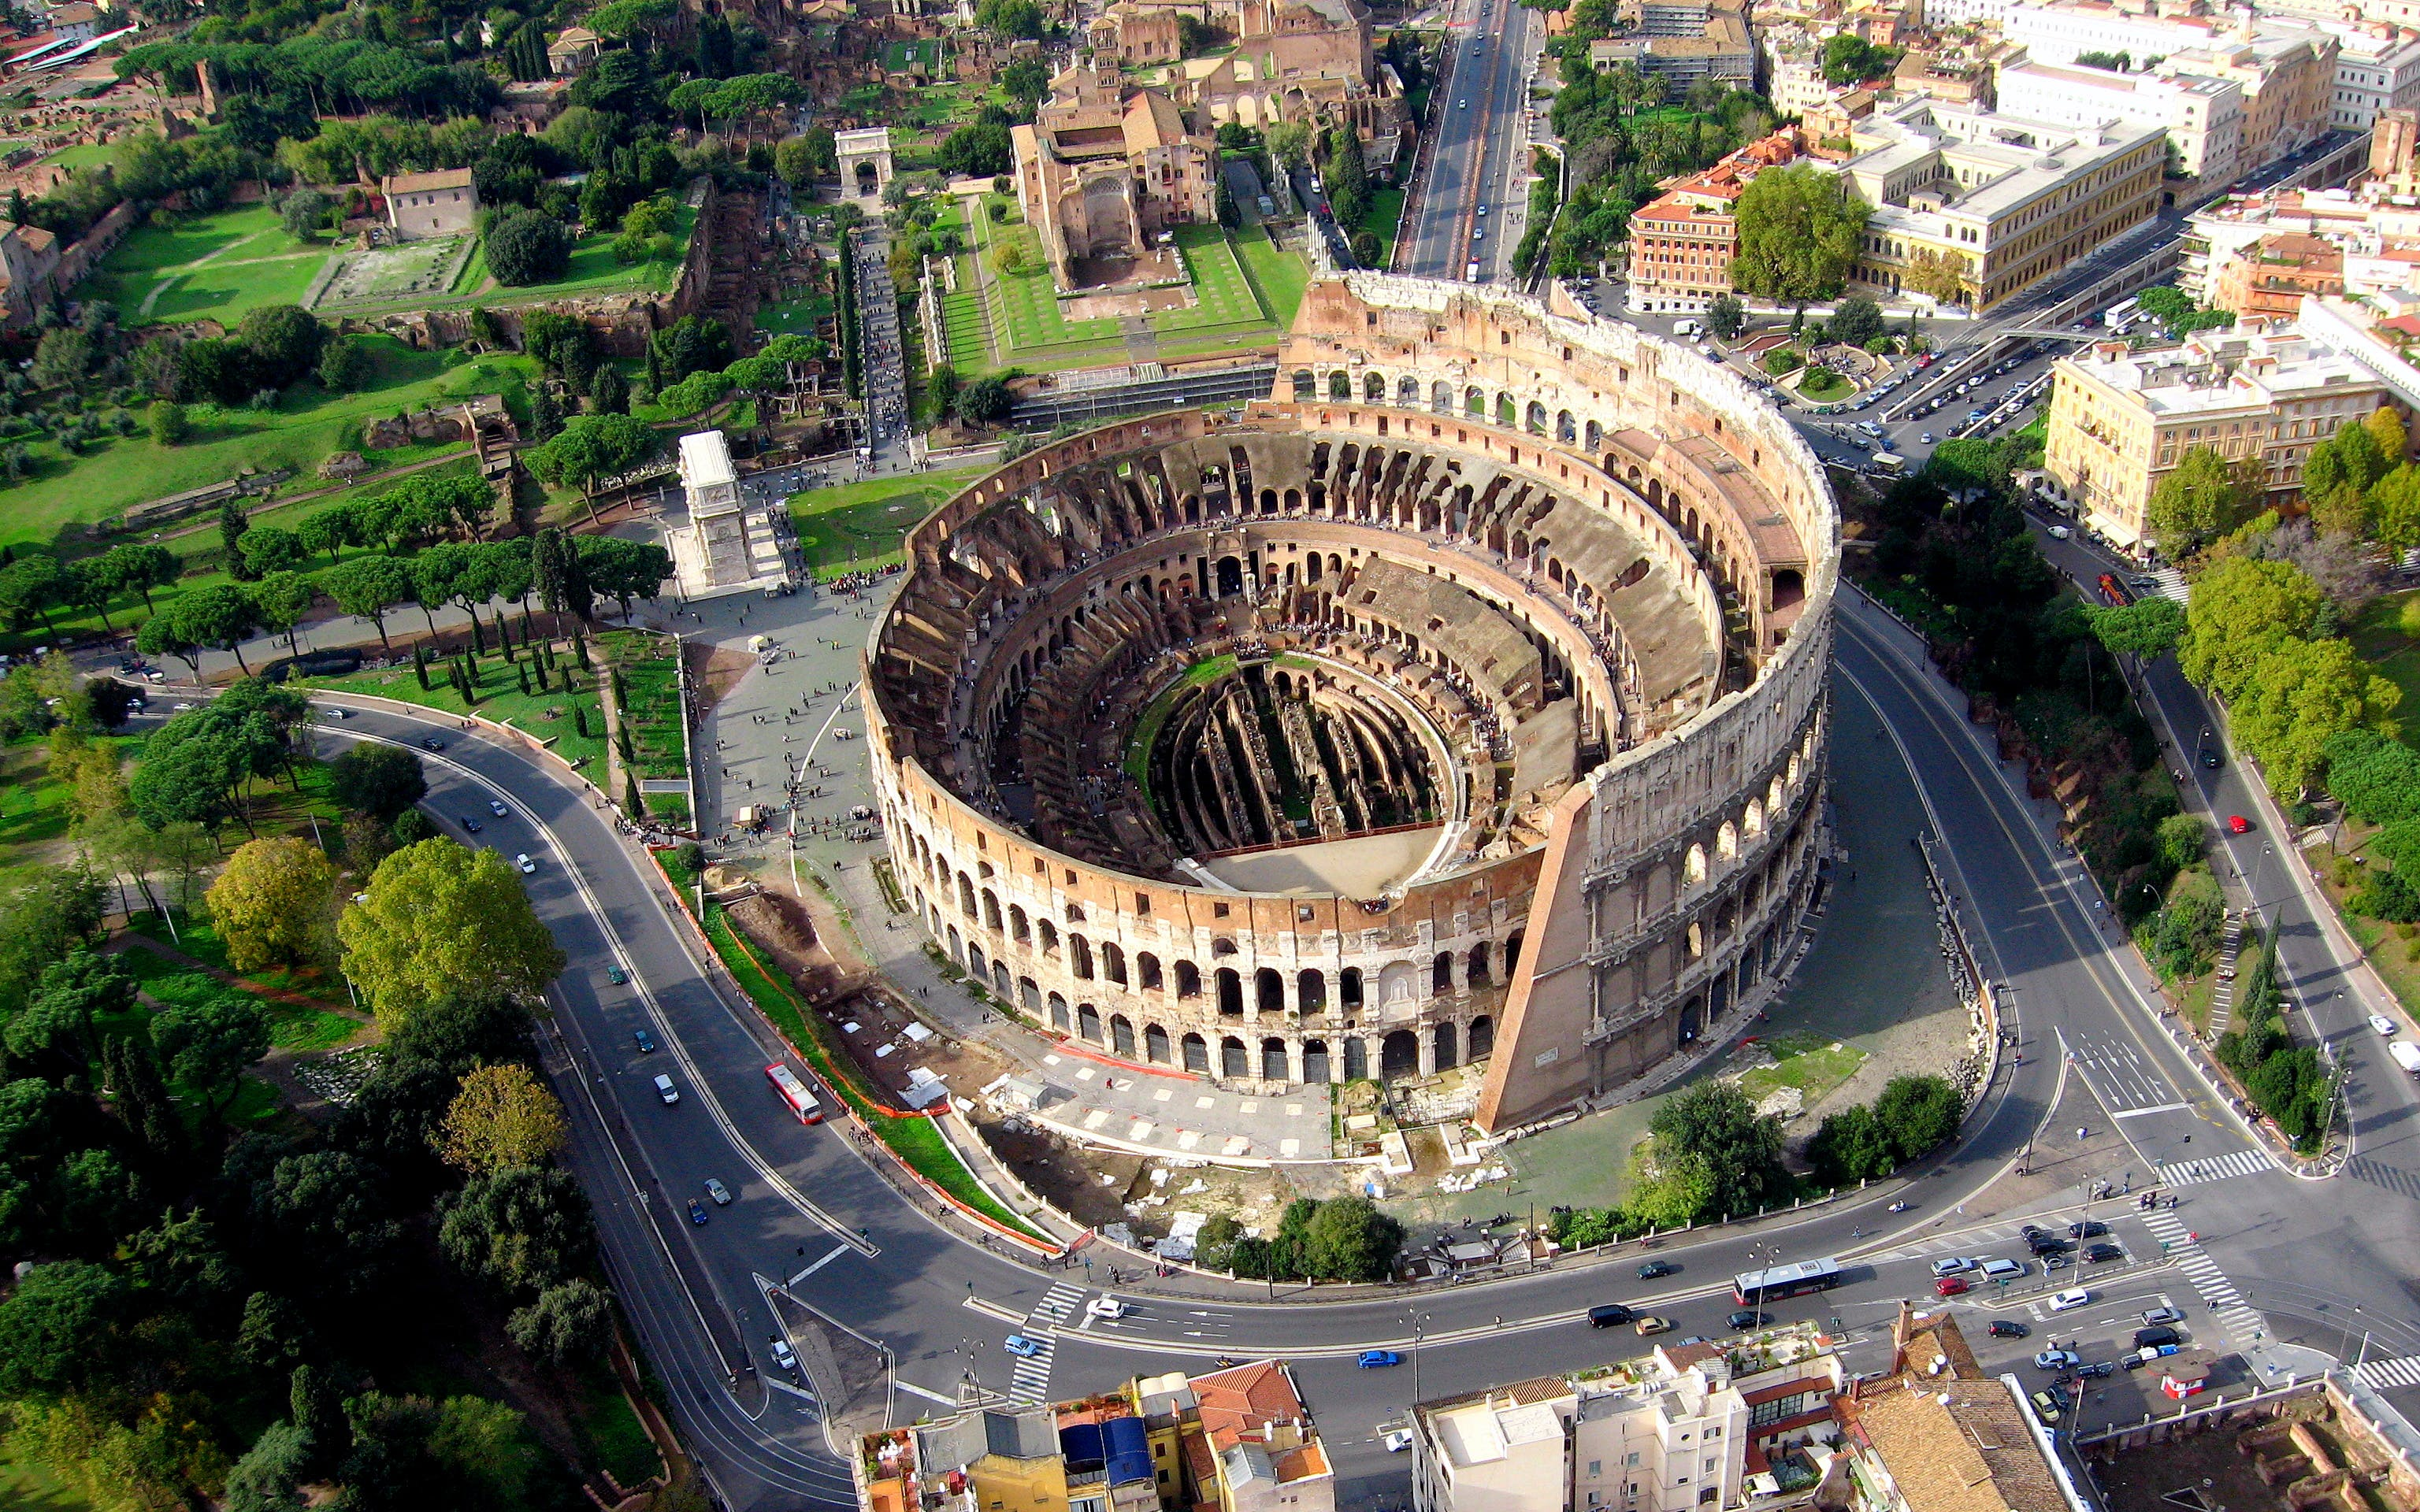 Skip the Line Tickets to Colosseum, Roman Forum and Palatine Hill